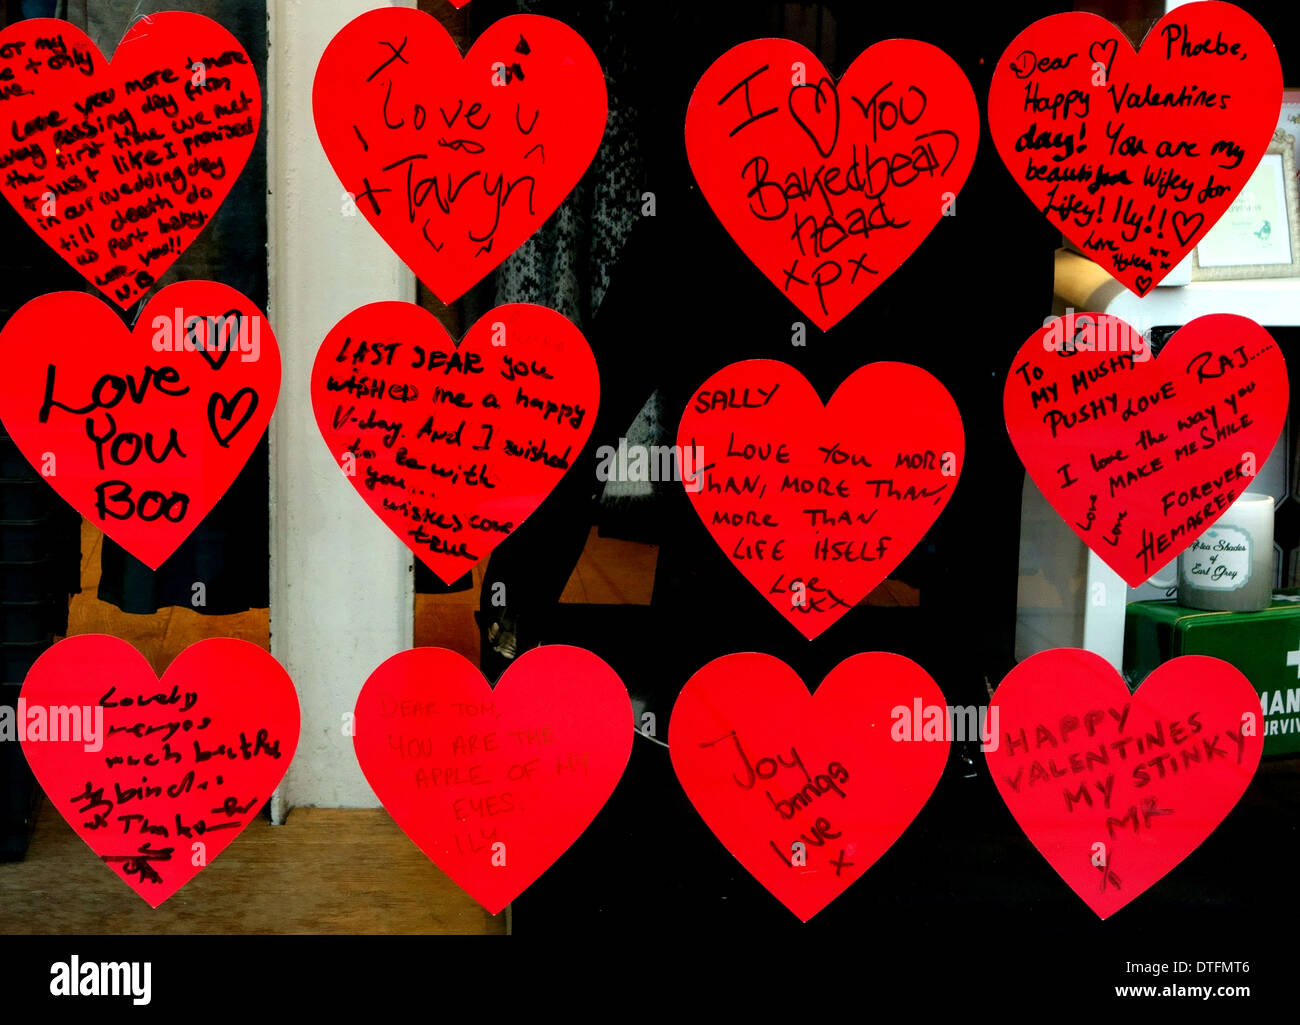 Valentine S Day Messages In Shop Window Display London Stock Photo